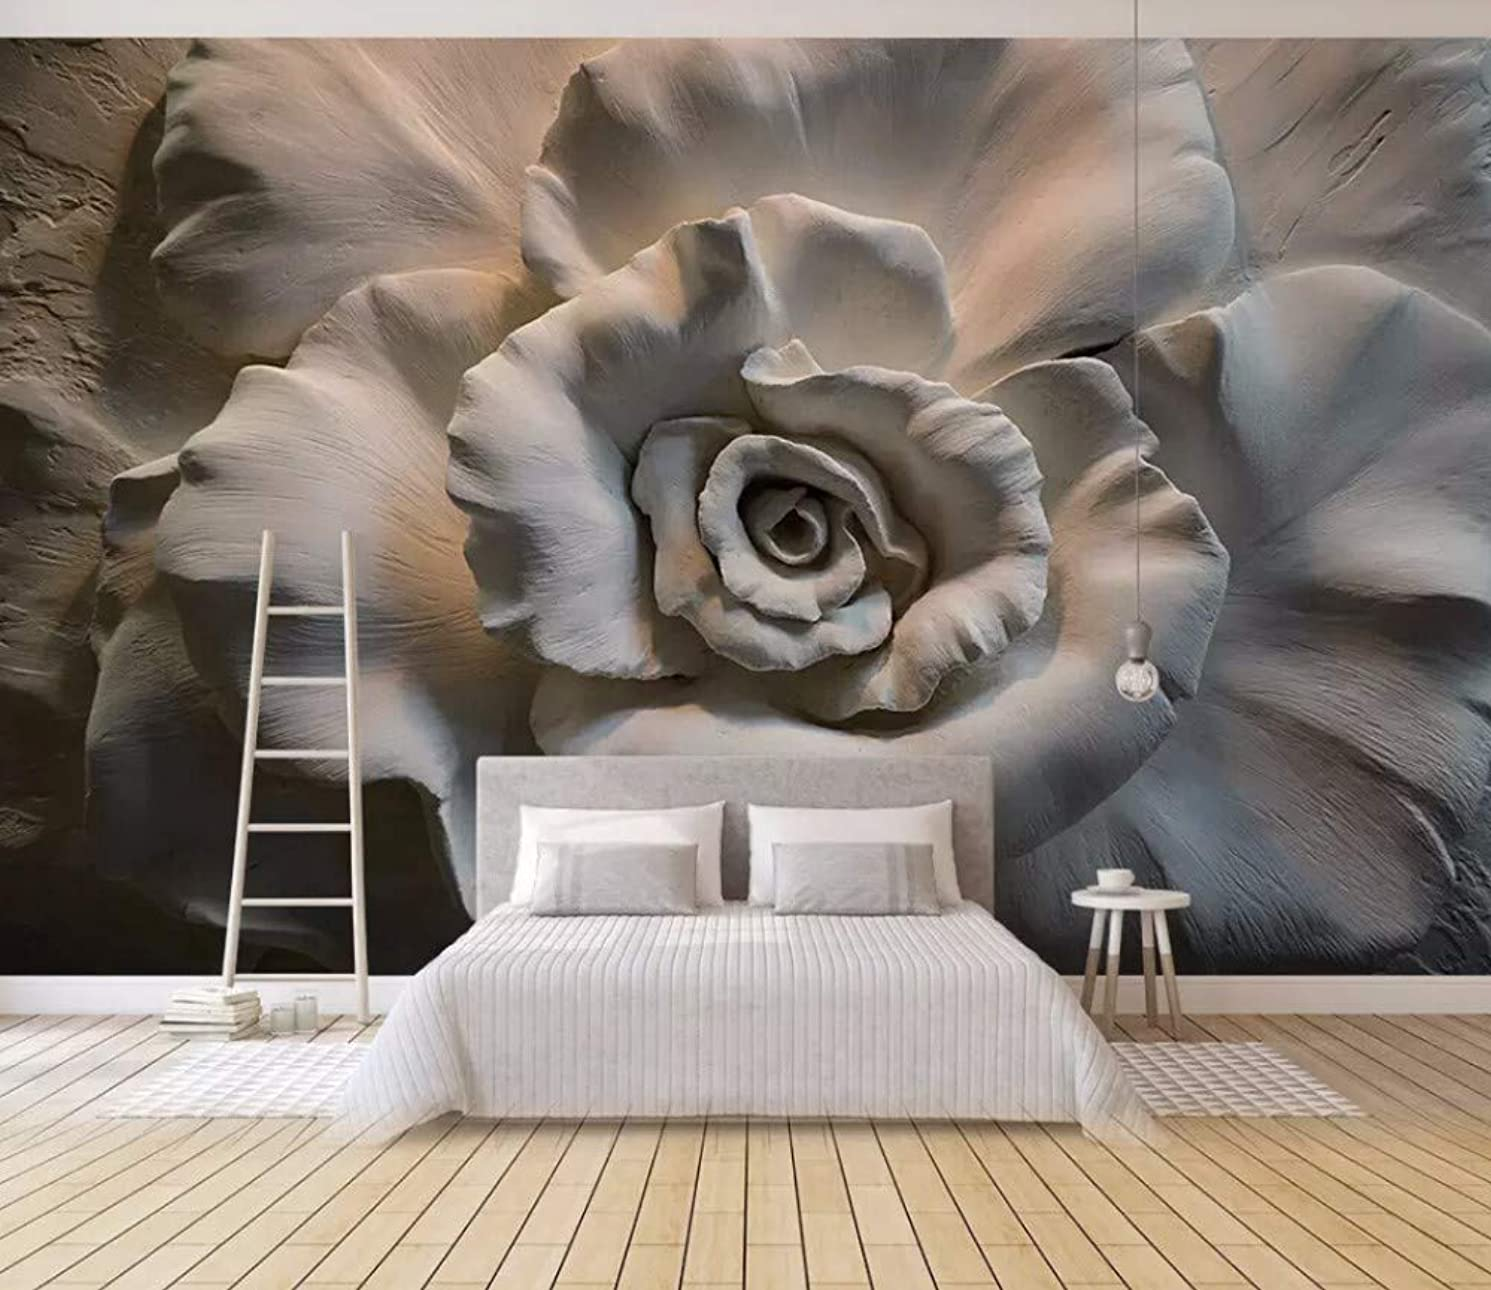 Wall Mural 3D Wallpaper Embossed Rose Vintage Modern Wall Paper for Living Room Bedroom Tv Wall Decor